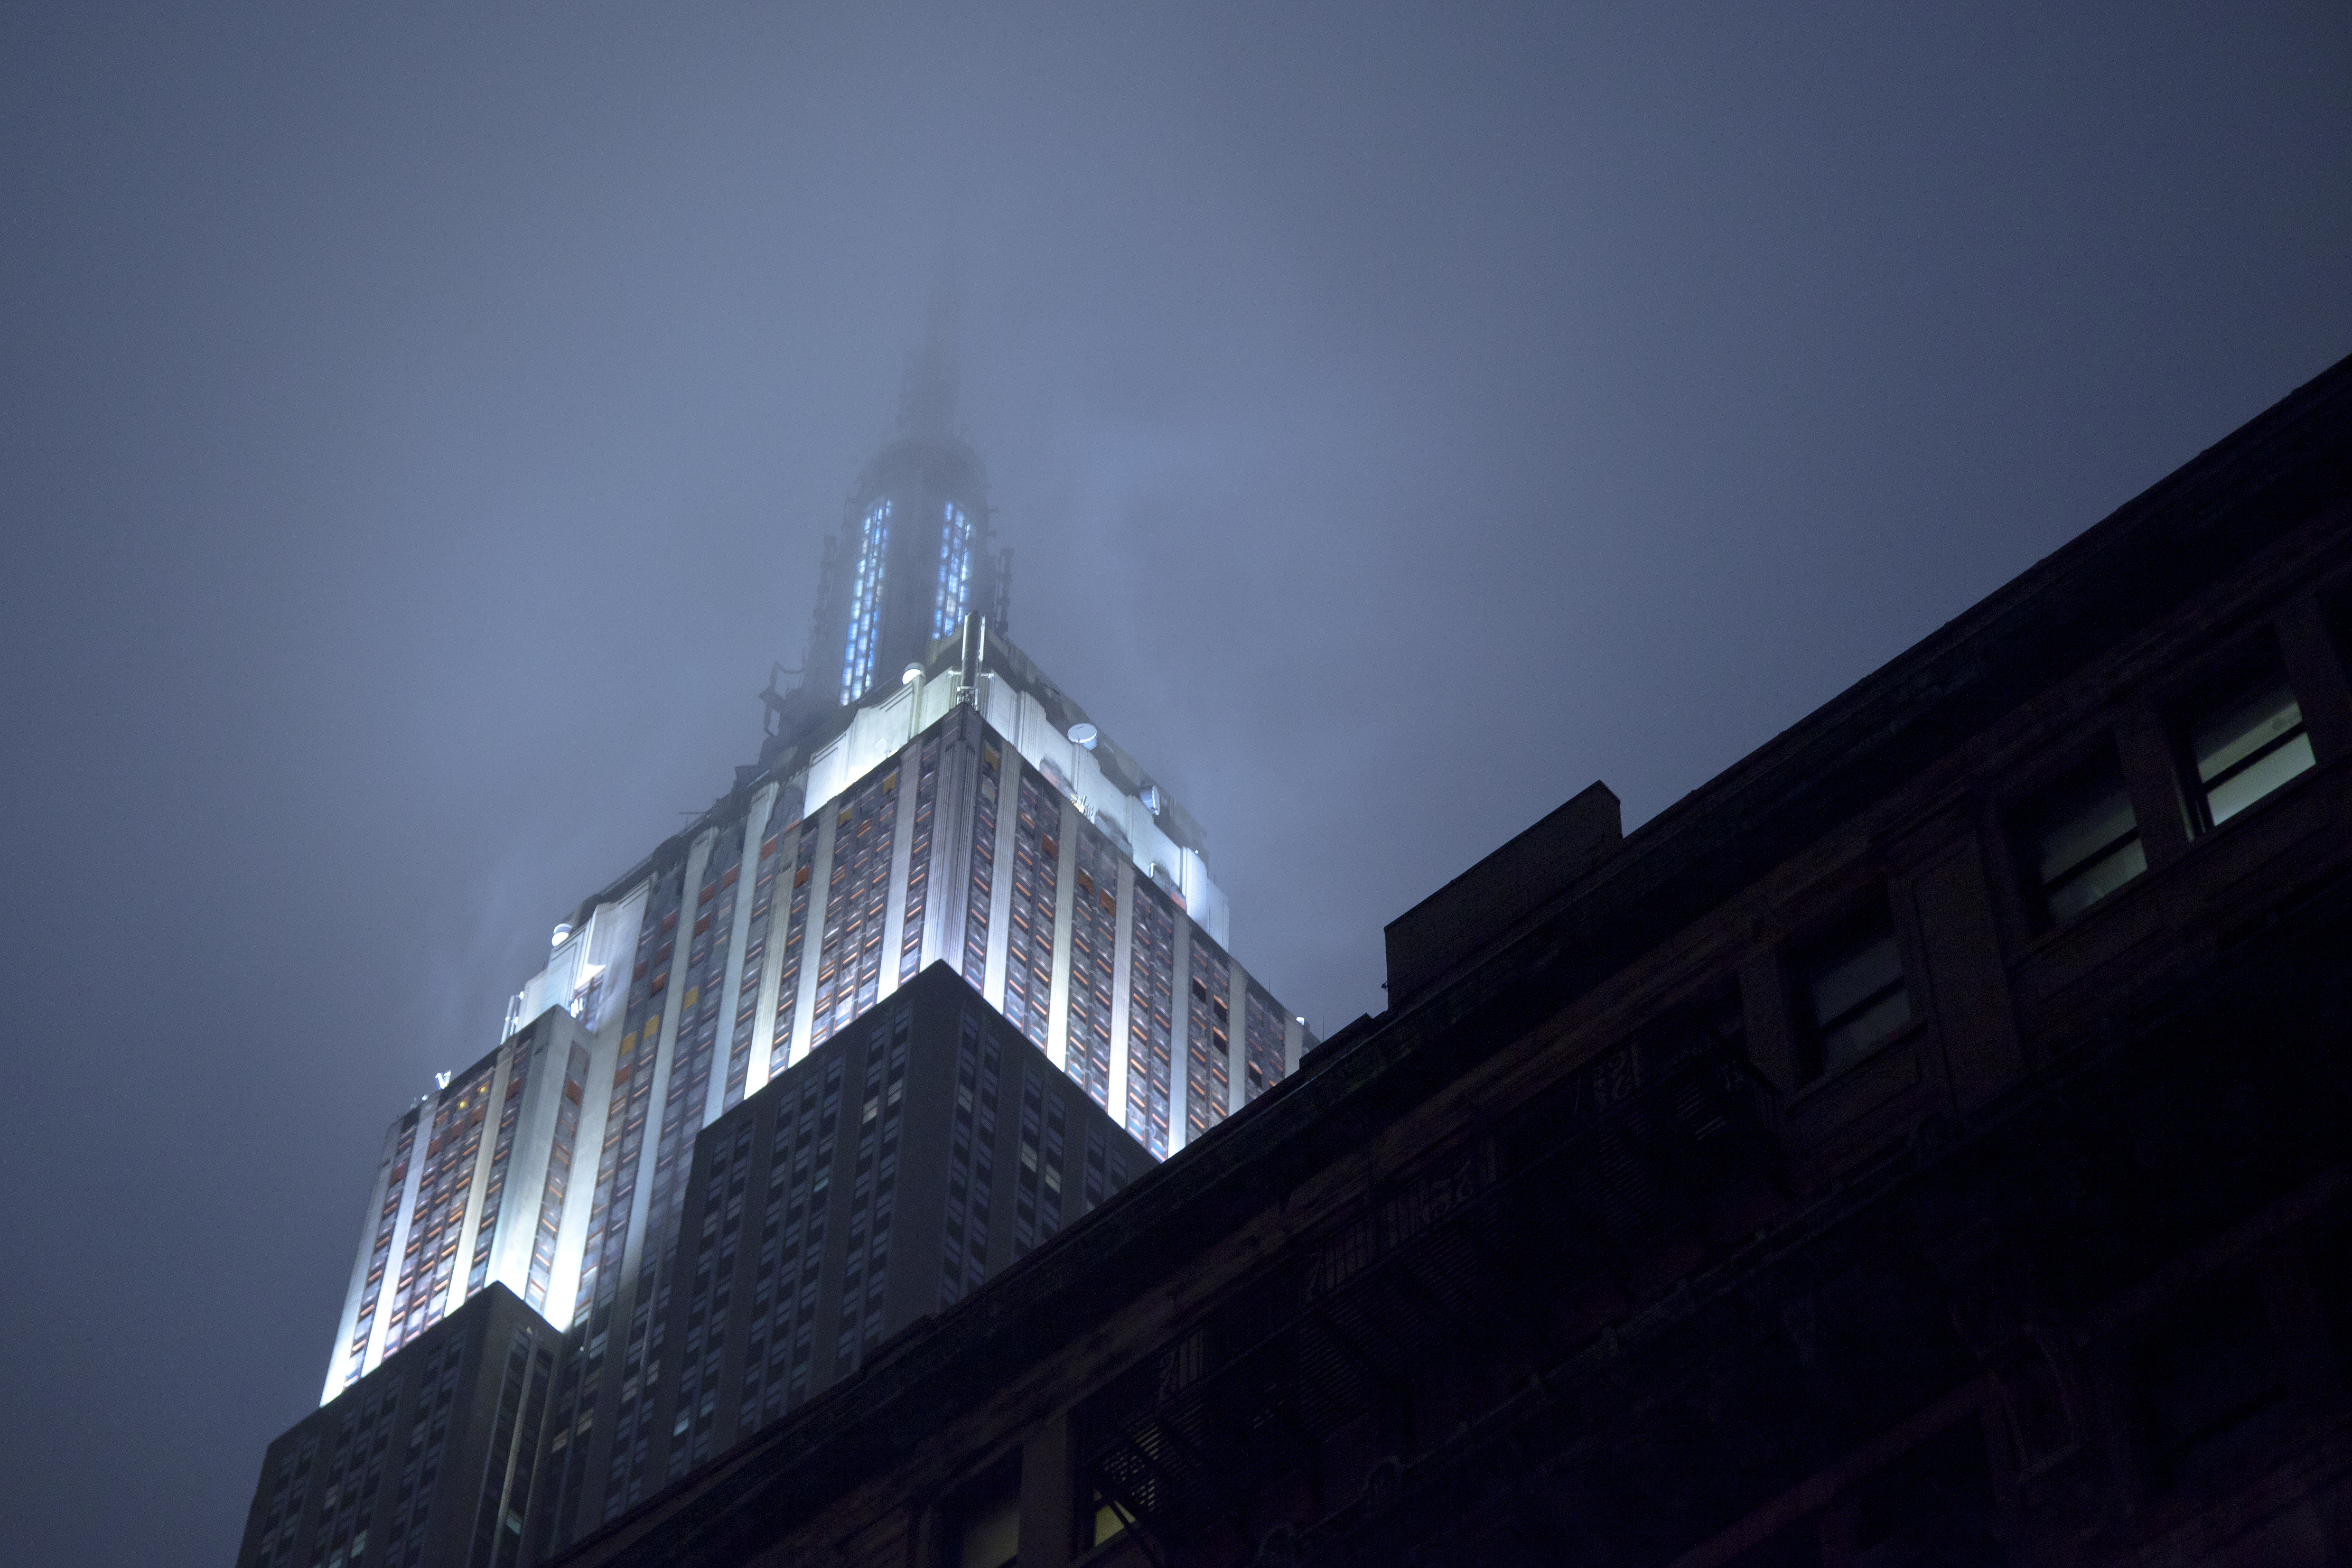 New York City Empire State Building At Night With Fog